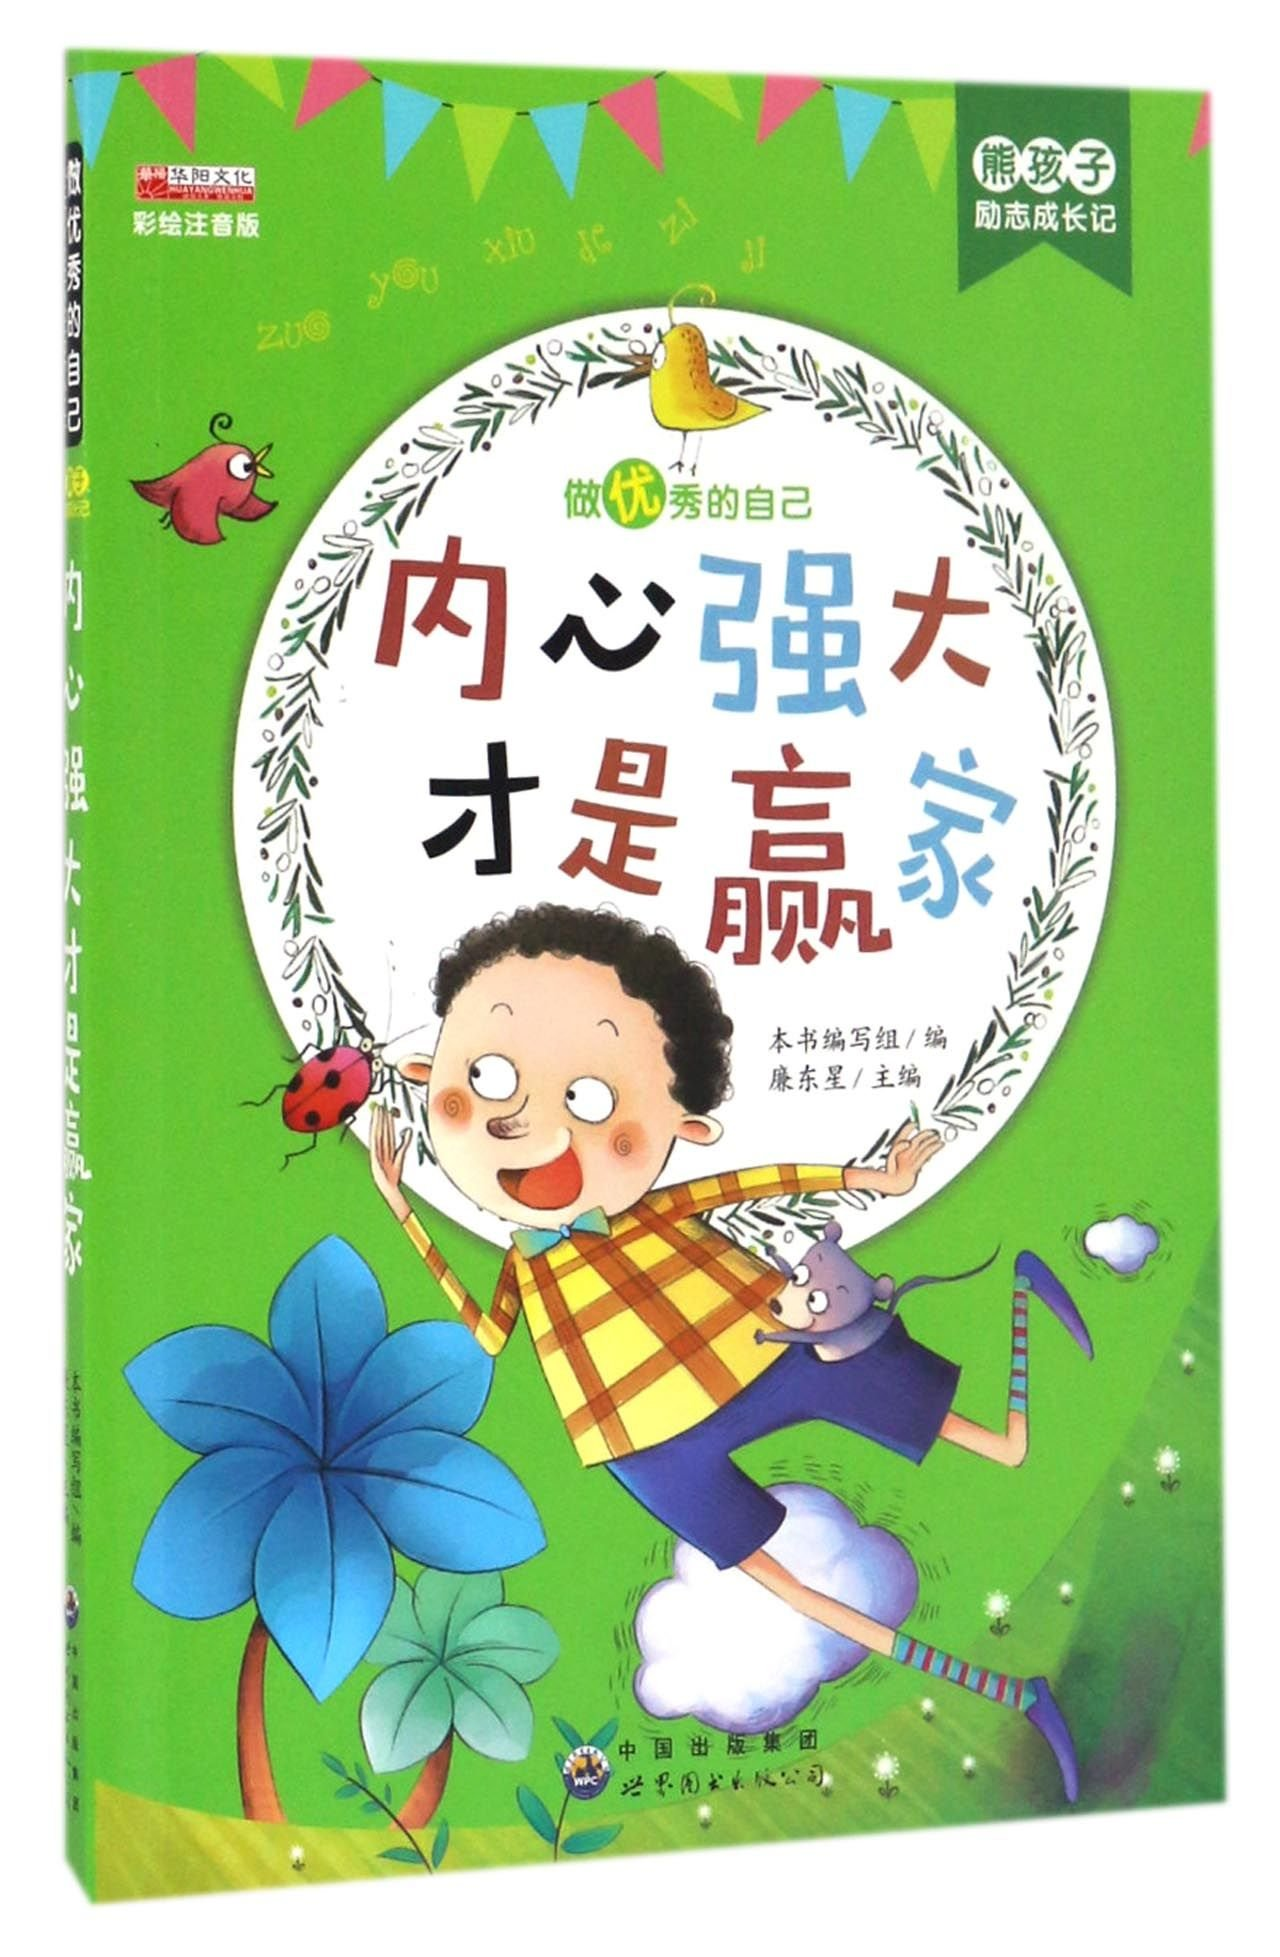 Download Be Strong-Minded to Win (Chinese Edition) Text fb2 ebook